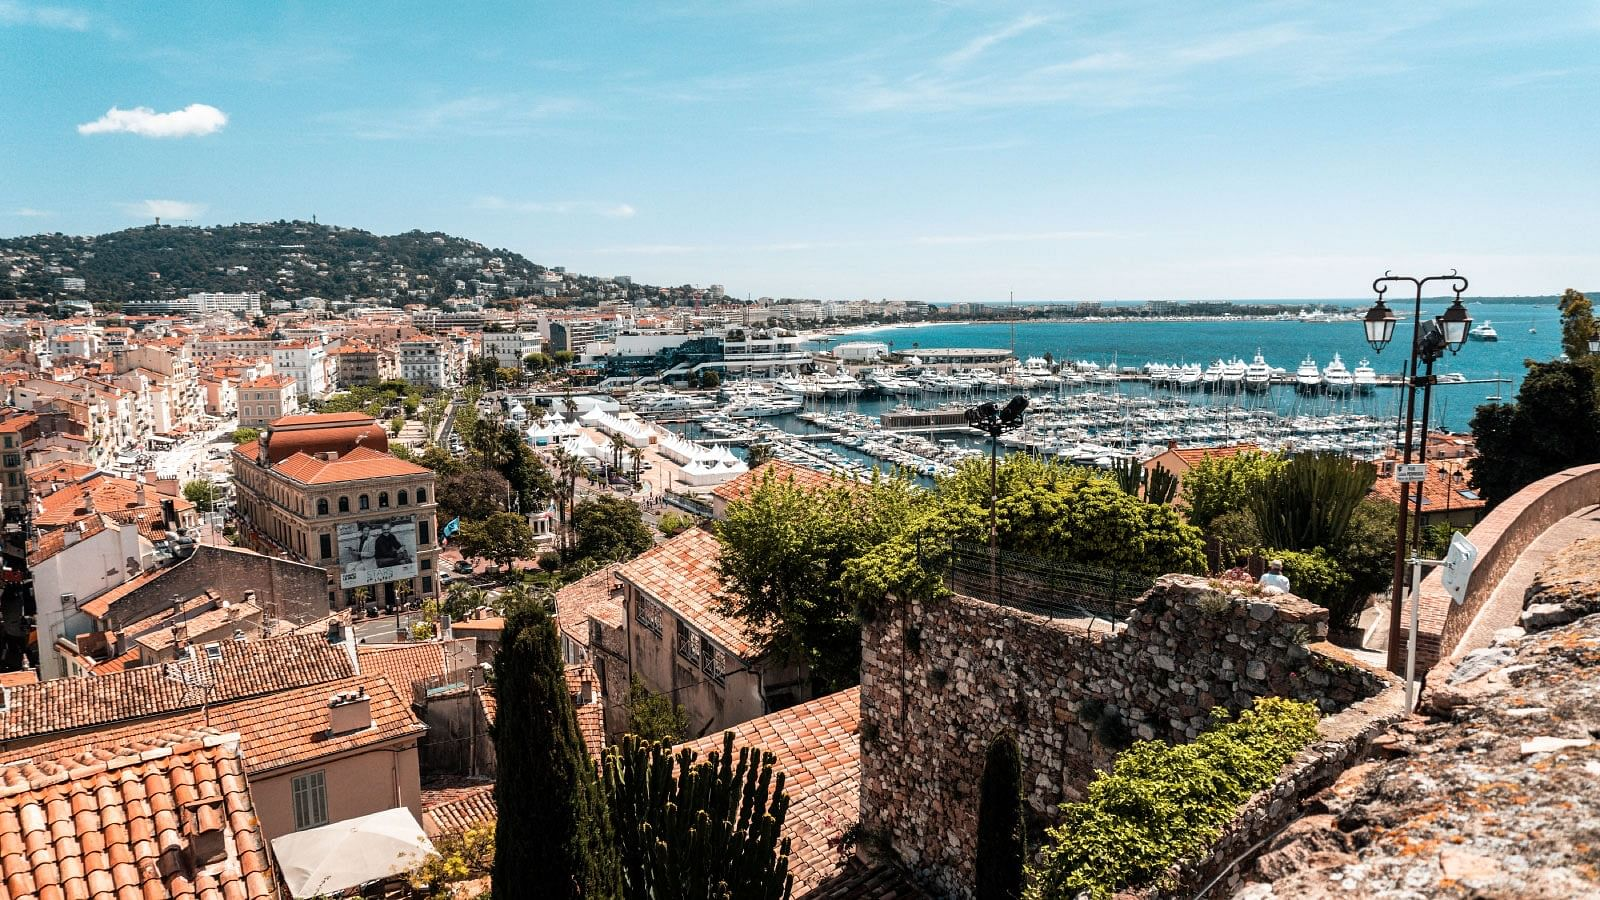 Cannes south of France Boat rental yacht car transfer tour hire